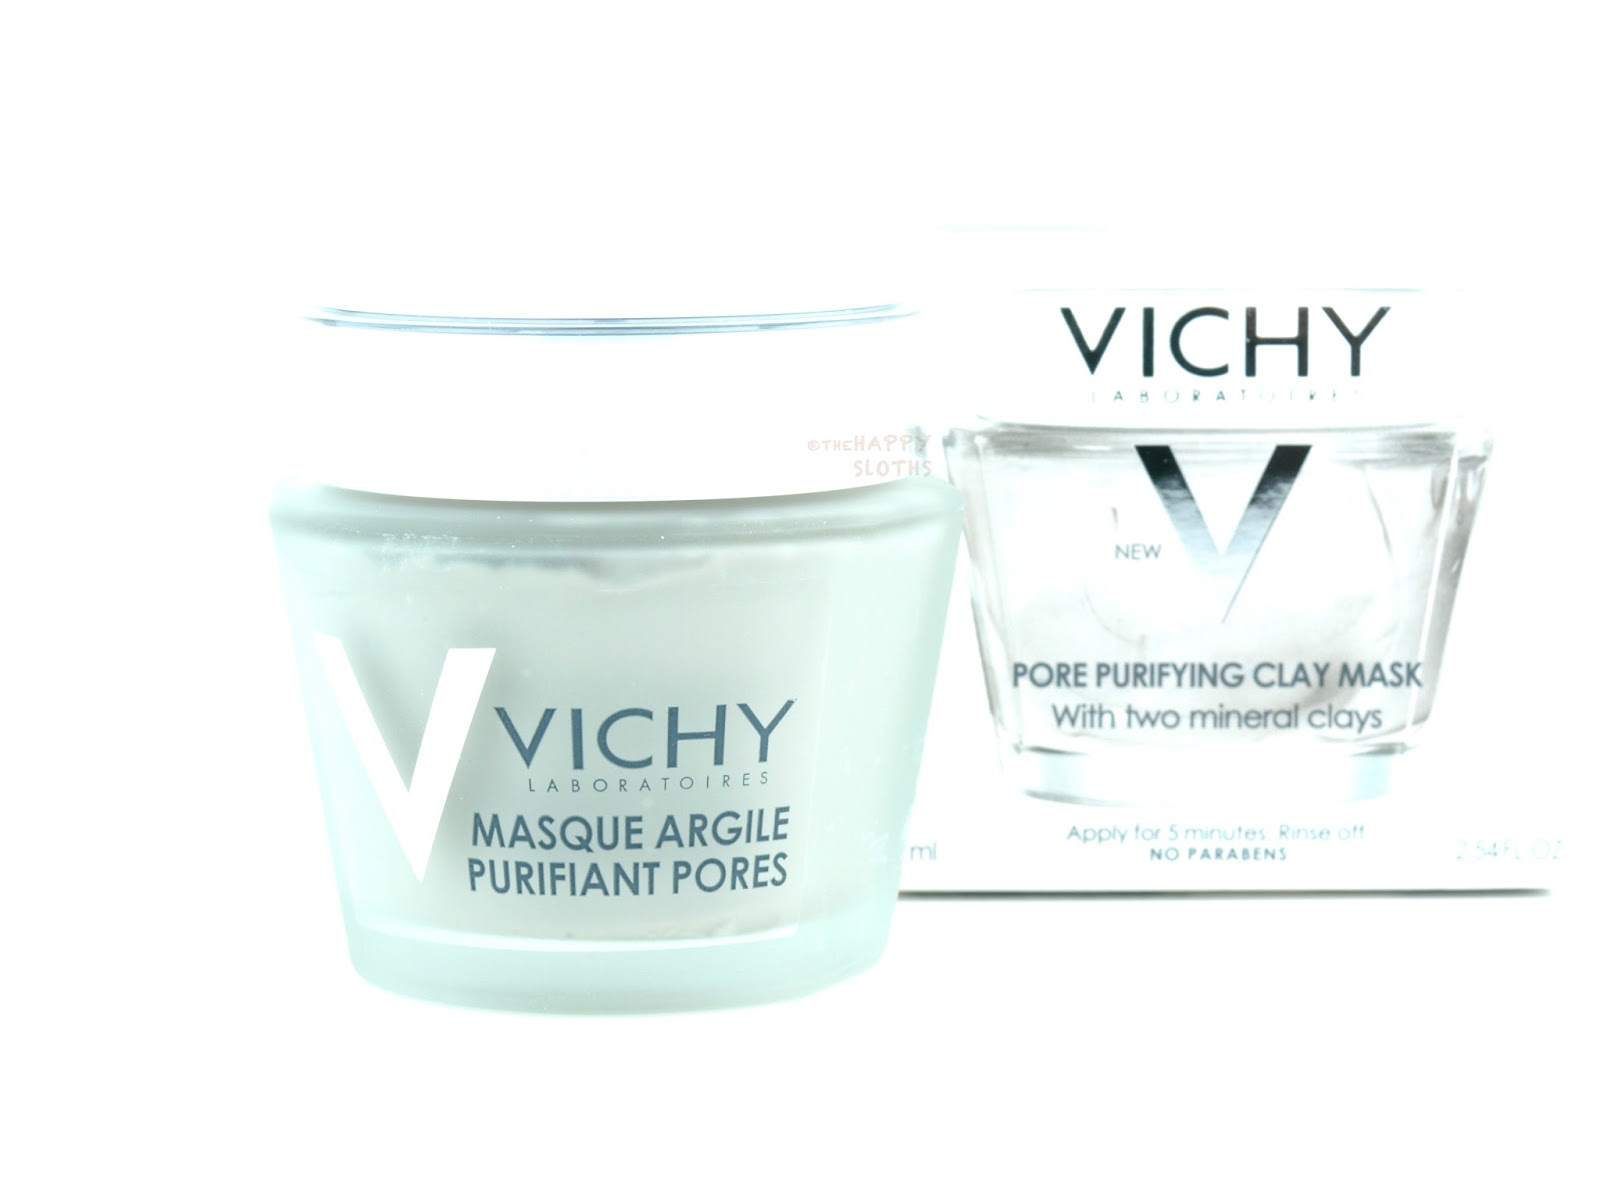 Vichy Pore Purifying Clay Mask Review